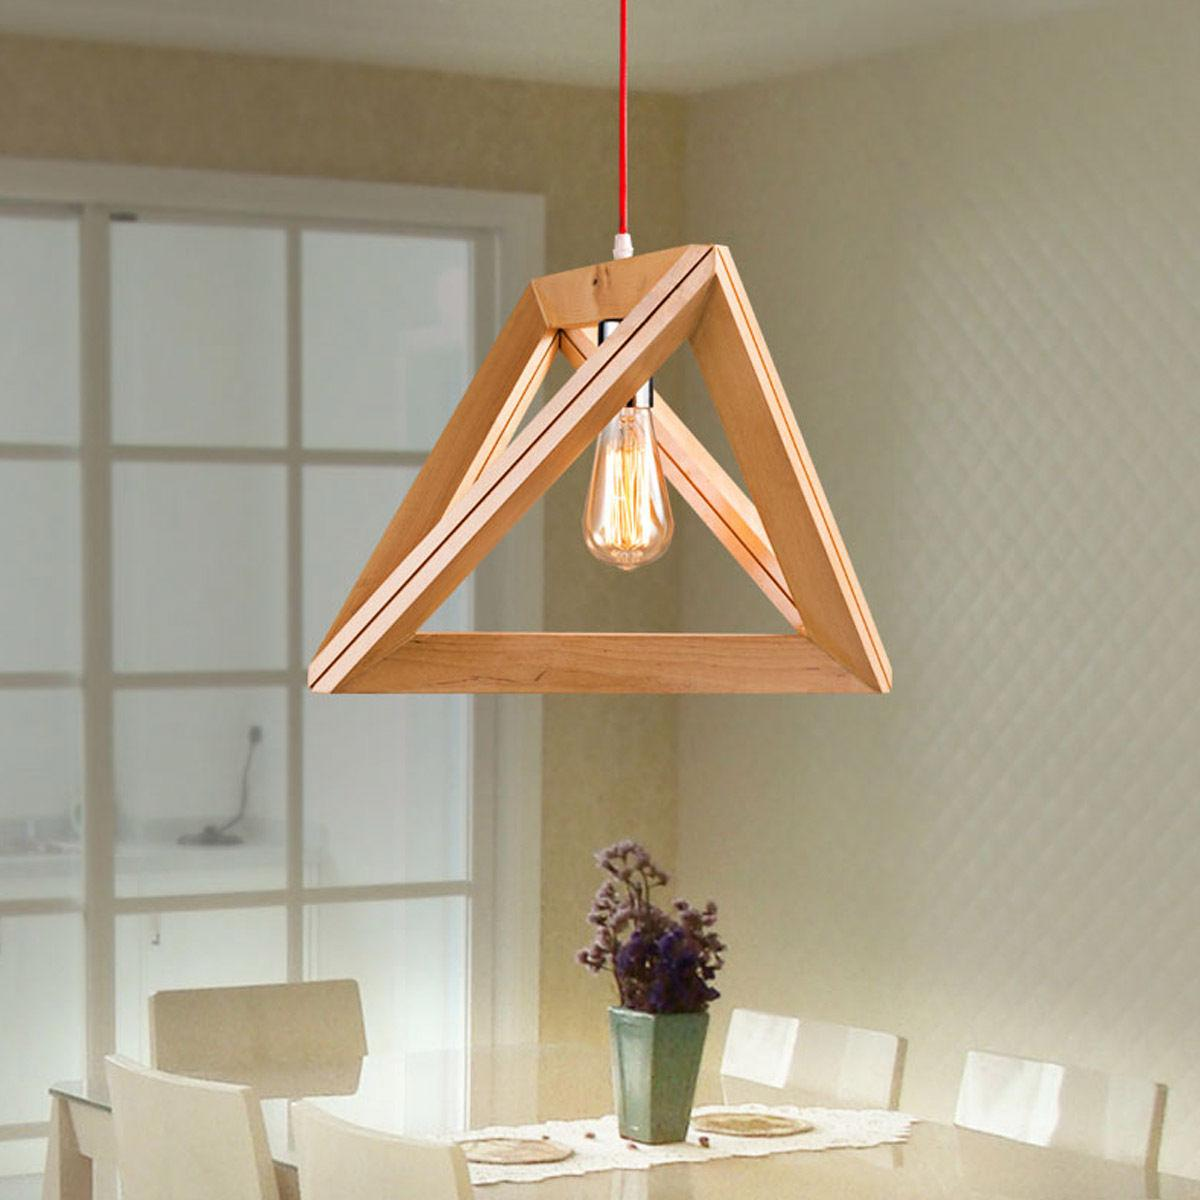 New modern art wooden ceiling light pendant lamp lighting light wood new modern art wooden ceiling light pendant lamp lighting light wood chandelier online with 14208piece on oilandwatchess store dhgate aloadofball